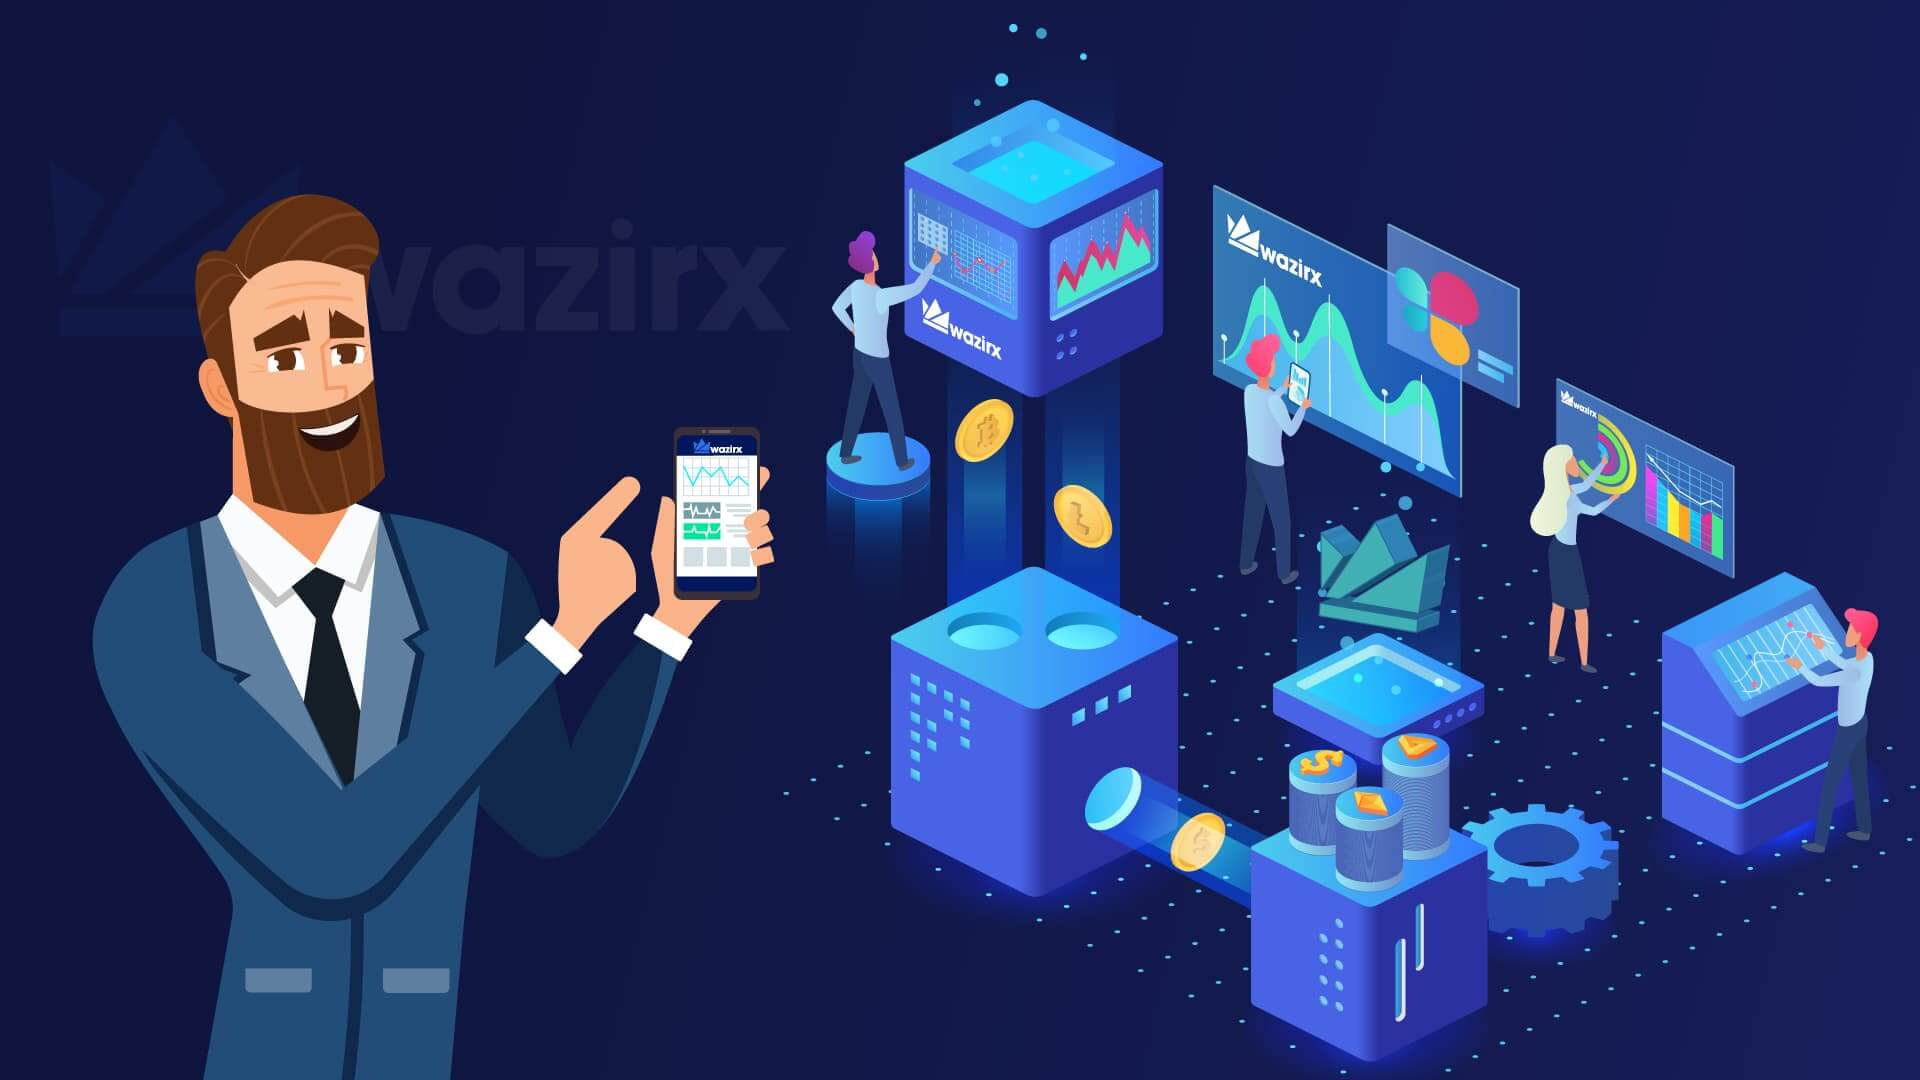 Features of WazirX